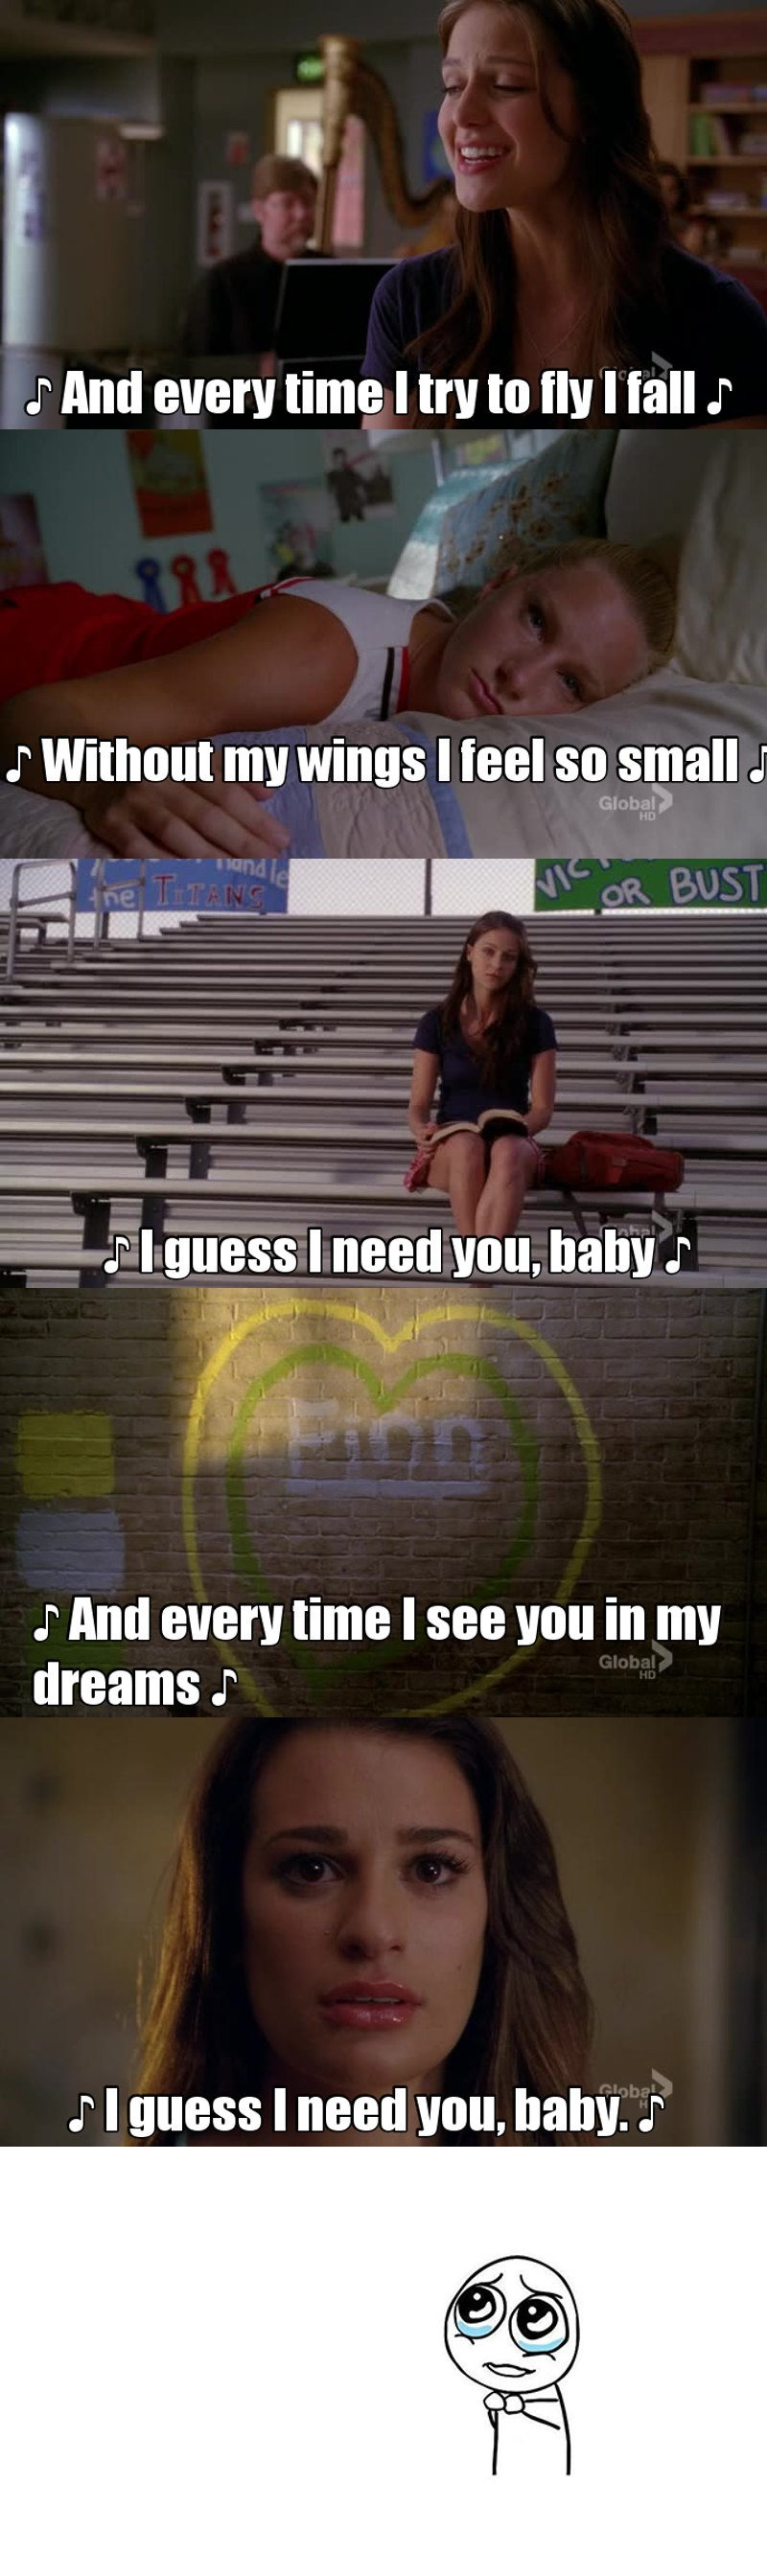 Probably one one of my favorite episodes of Glee in recent memory... A sequel 'Brittany' episode of sorts... And up until the very end I'm like... 'No way we can get through 2 B.Spears episodes without 'Everytime' (coincidentally my fave), and boom, they ended with it... And beautifully I might add! Glee feels like it's evolving as a show and I know this probably is where traditionalists probably started being pushed away but I'm liking it more and more so far!